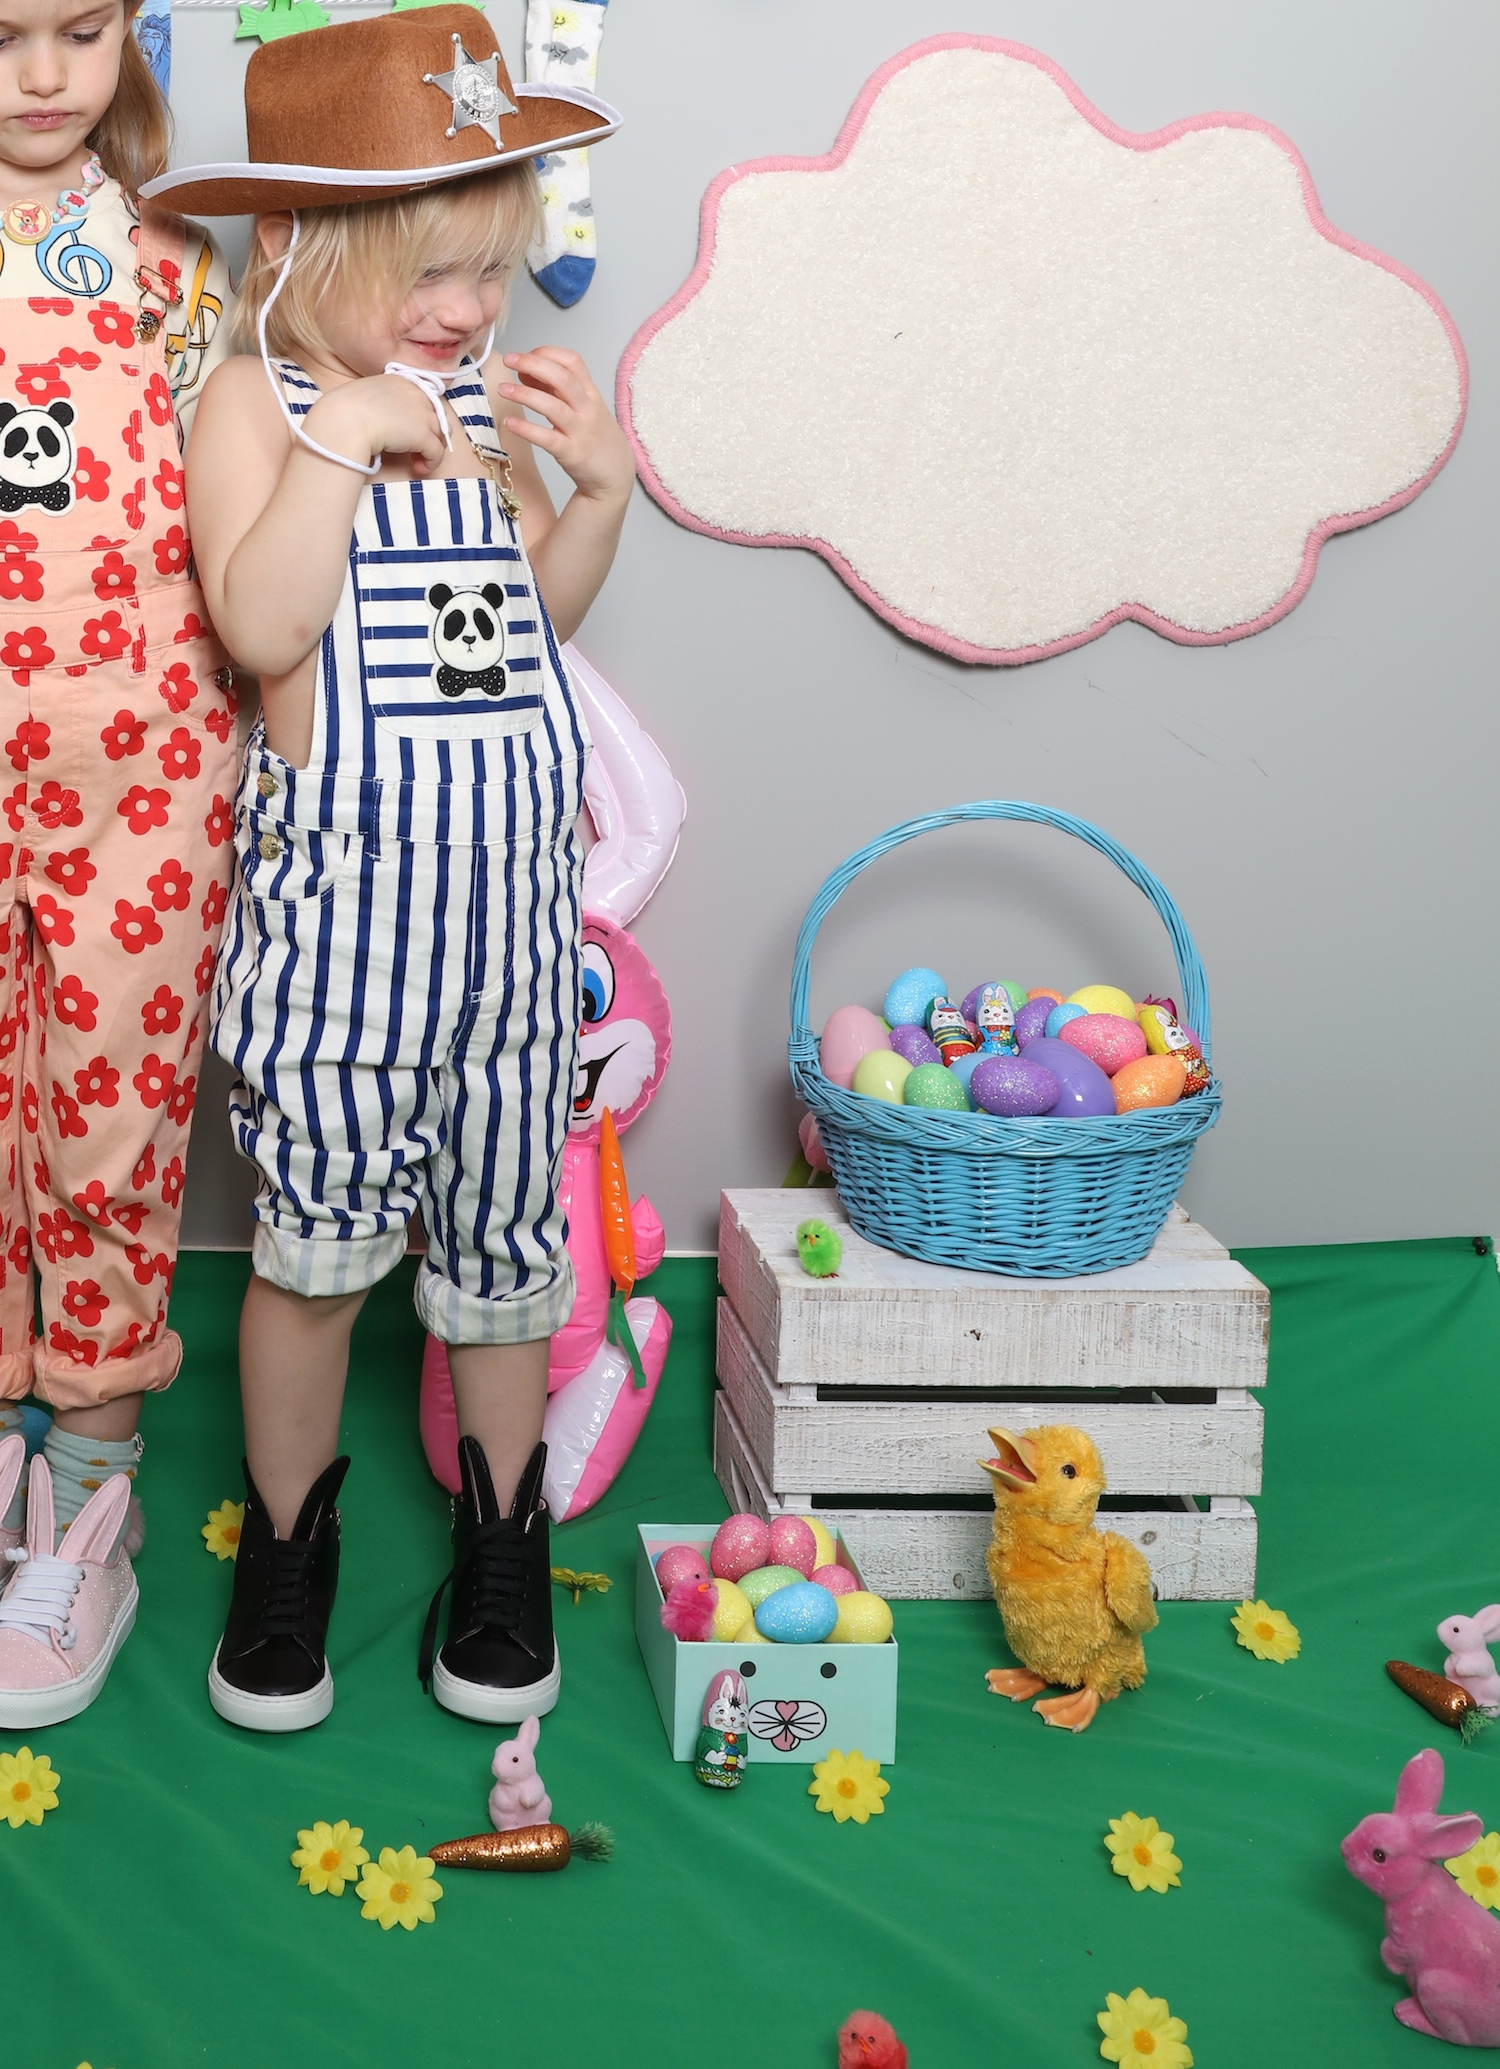 children_salon_dungarees_mini_rodini_kids_bunny_trainers_mminna_parikka_mini